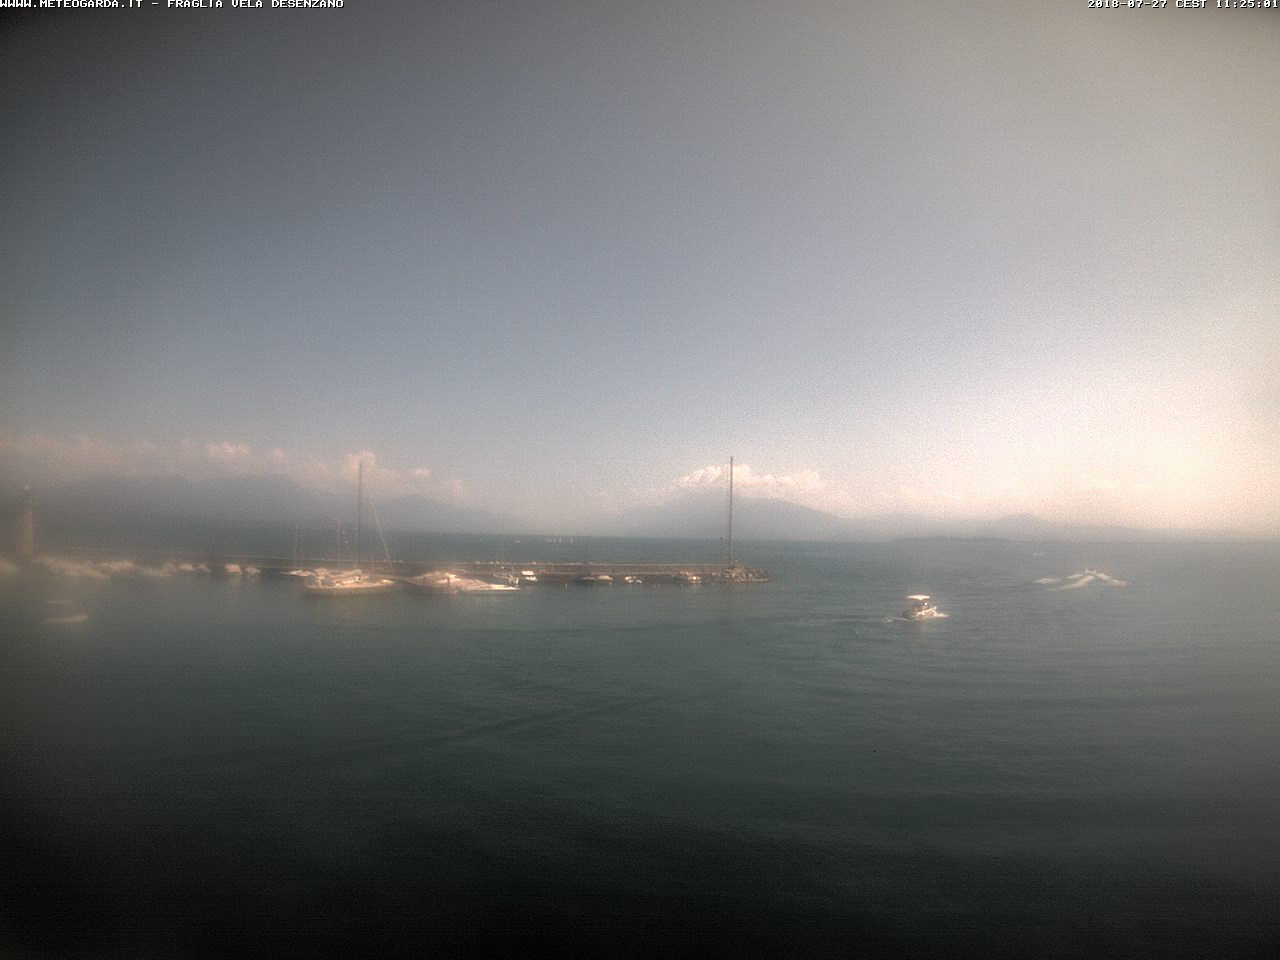 Webcam von http://www.meteogarda.it/desenzano/desenzano.html